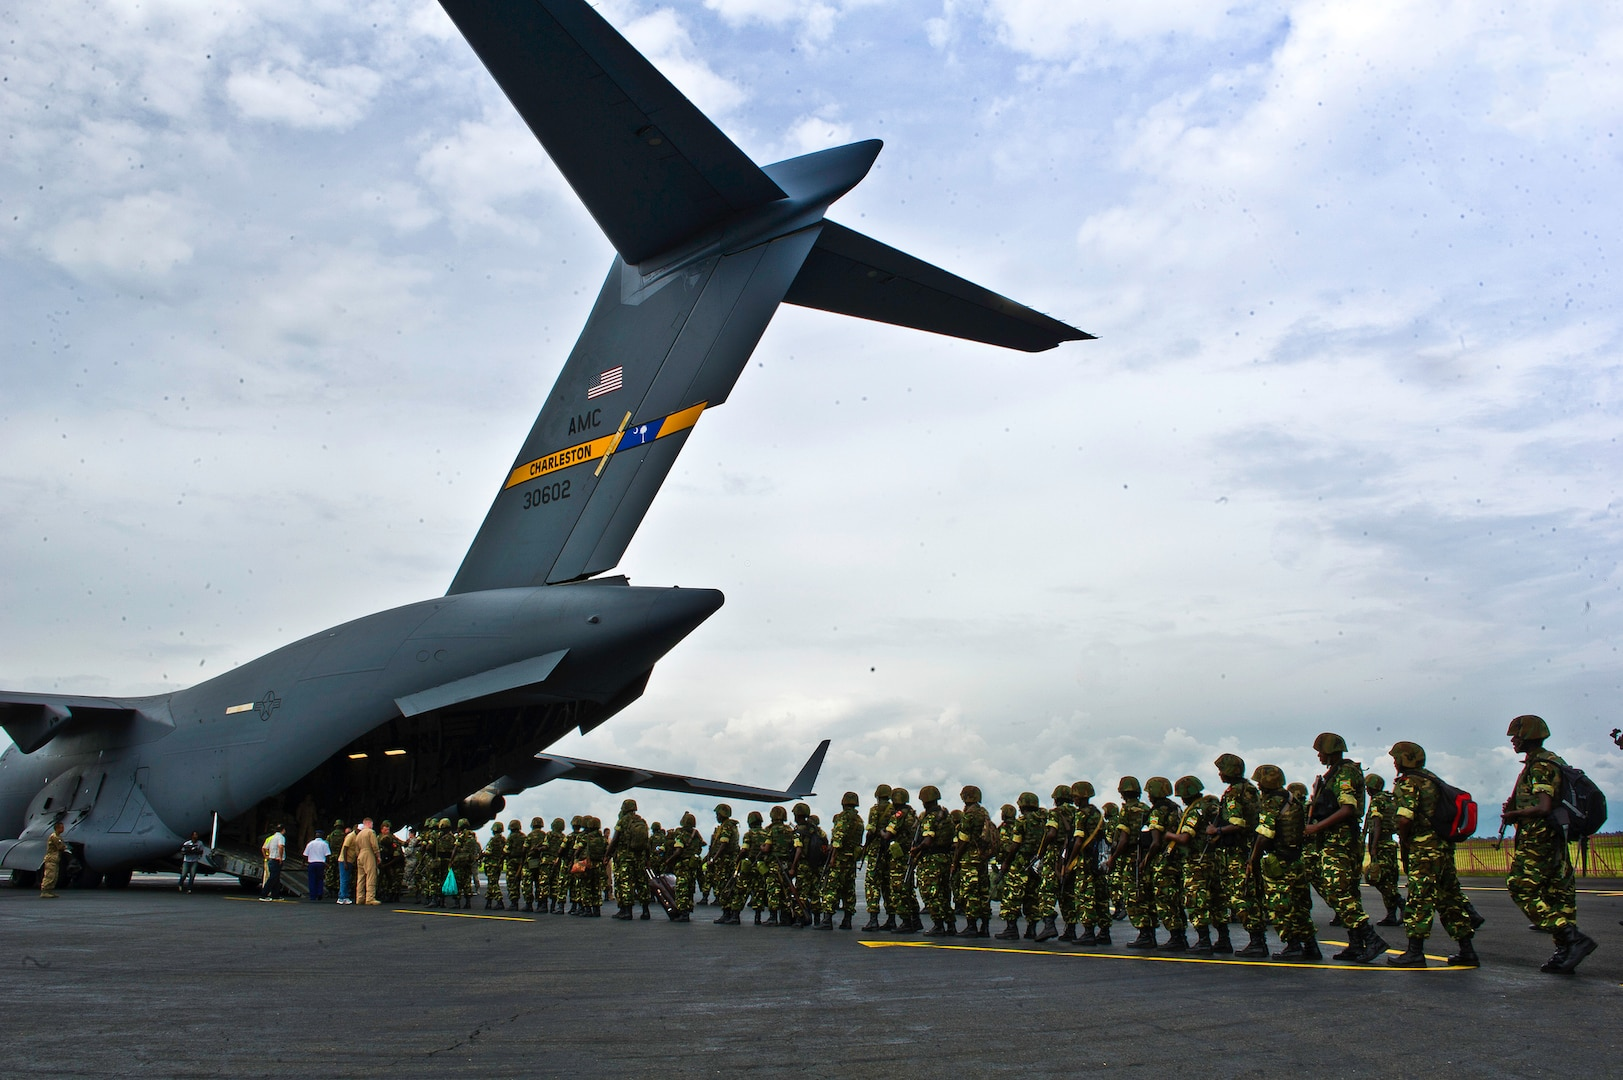 Burundi soldiers in 2013 prepare to load onto a C–17 at Bujumbura Airport in Burundi. In coordination with the French military and the African Union, the U.S. military provided airlift support to transport Burundi soldiers, food and supplies in the CAR